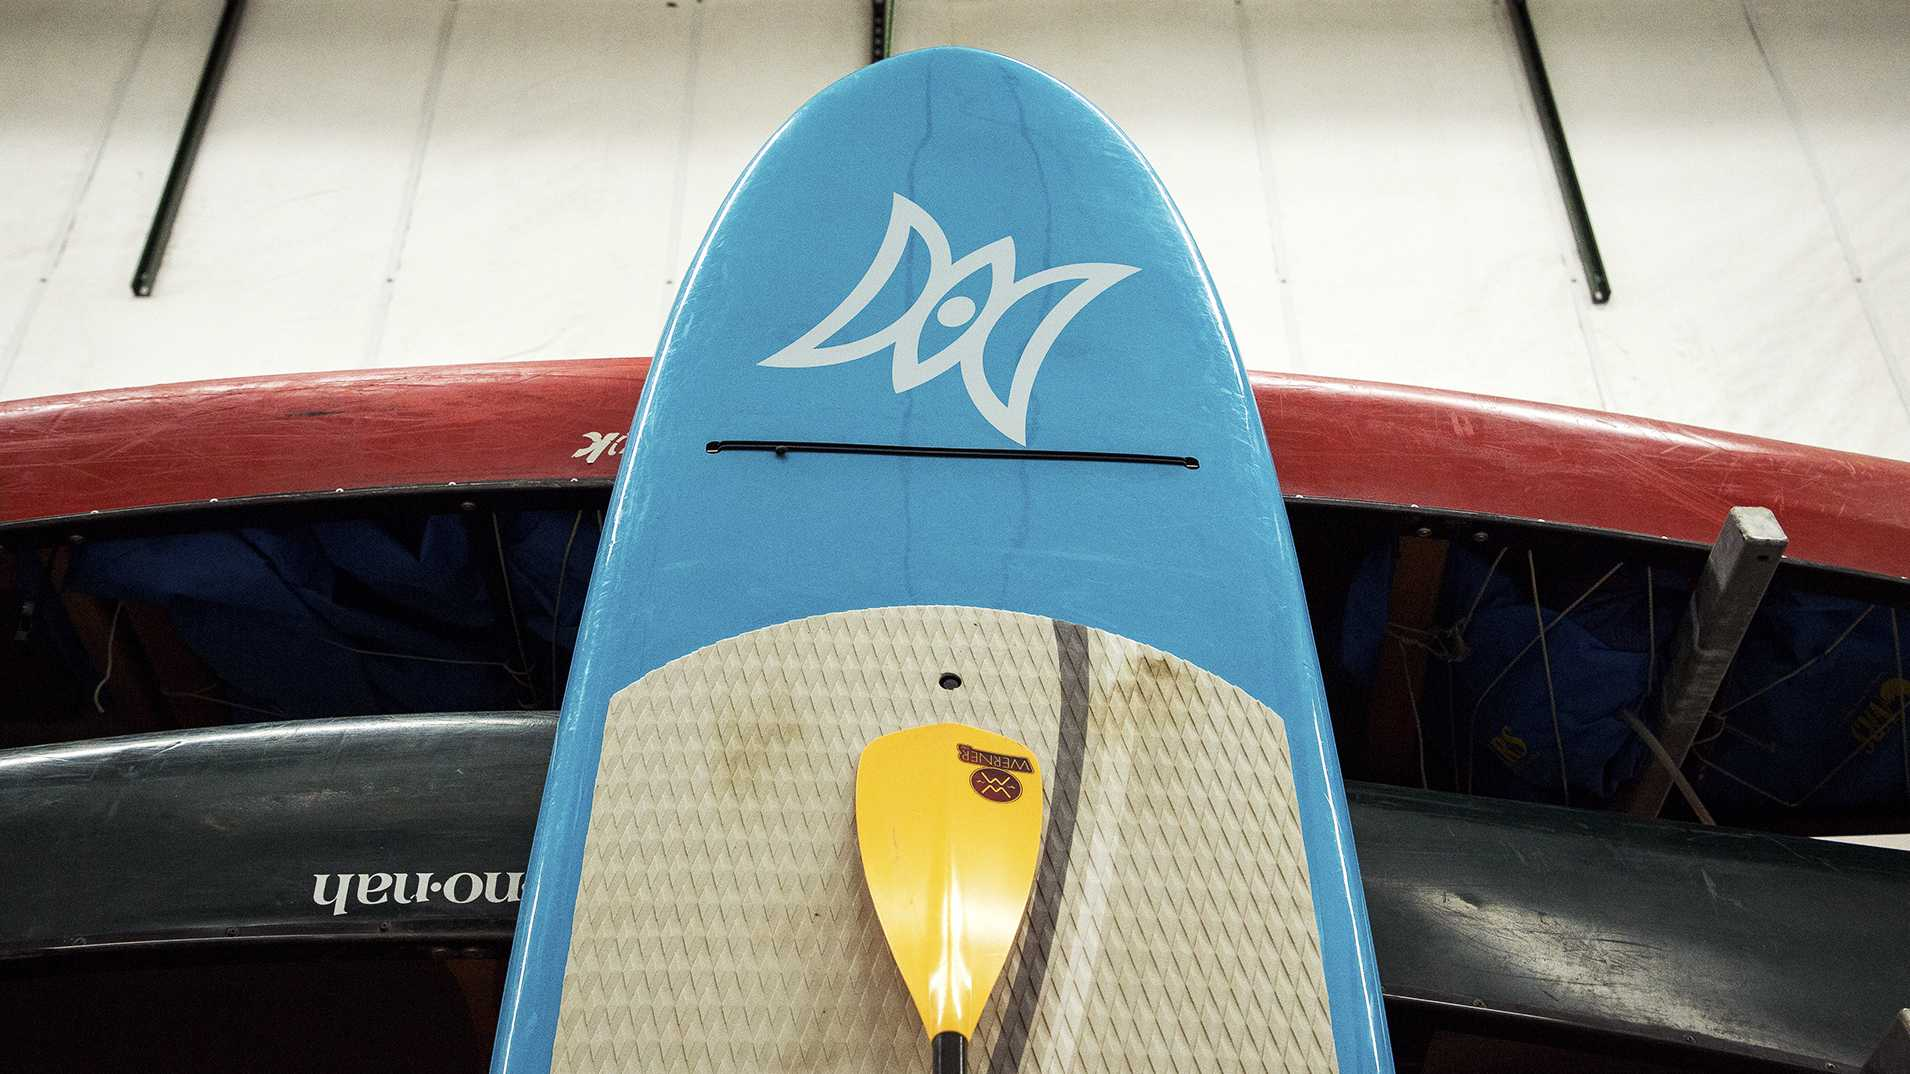 Paddle boards are seen at the University of Iowa Outdoor Rental Center on Tuesday, Sept. 19, 2017. (David Harmantas/The Daily Iowan)